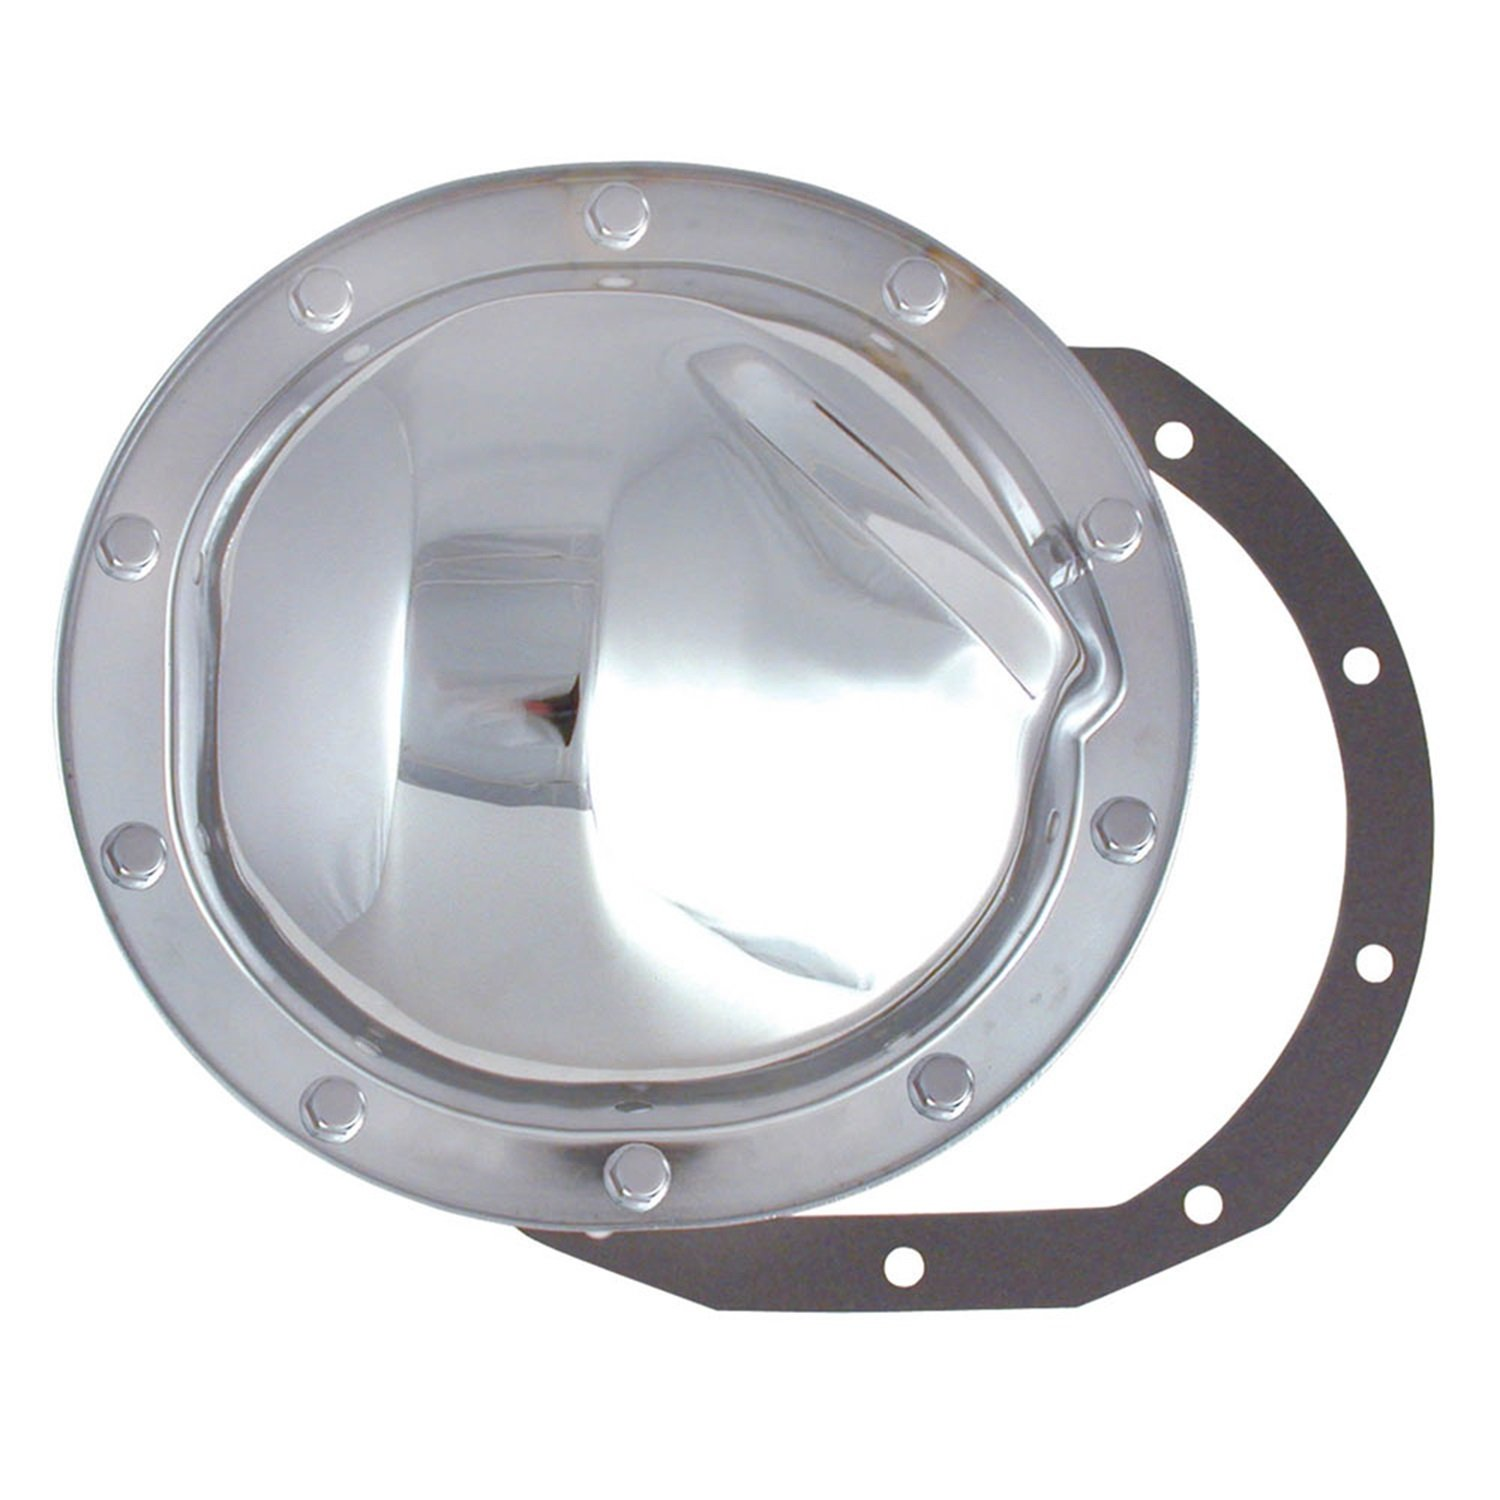 Spectre Performance 60703 10-Bolt Differential Cover